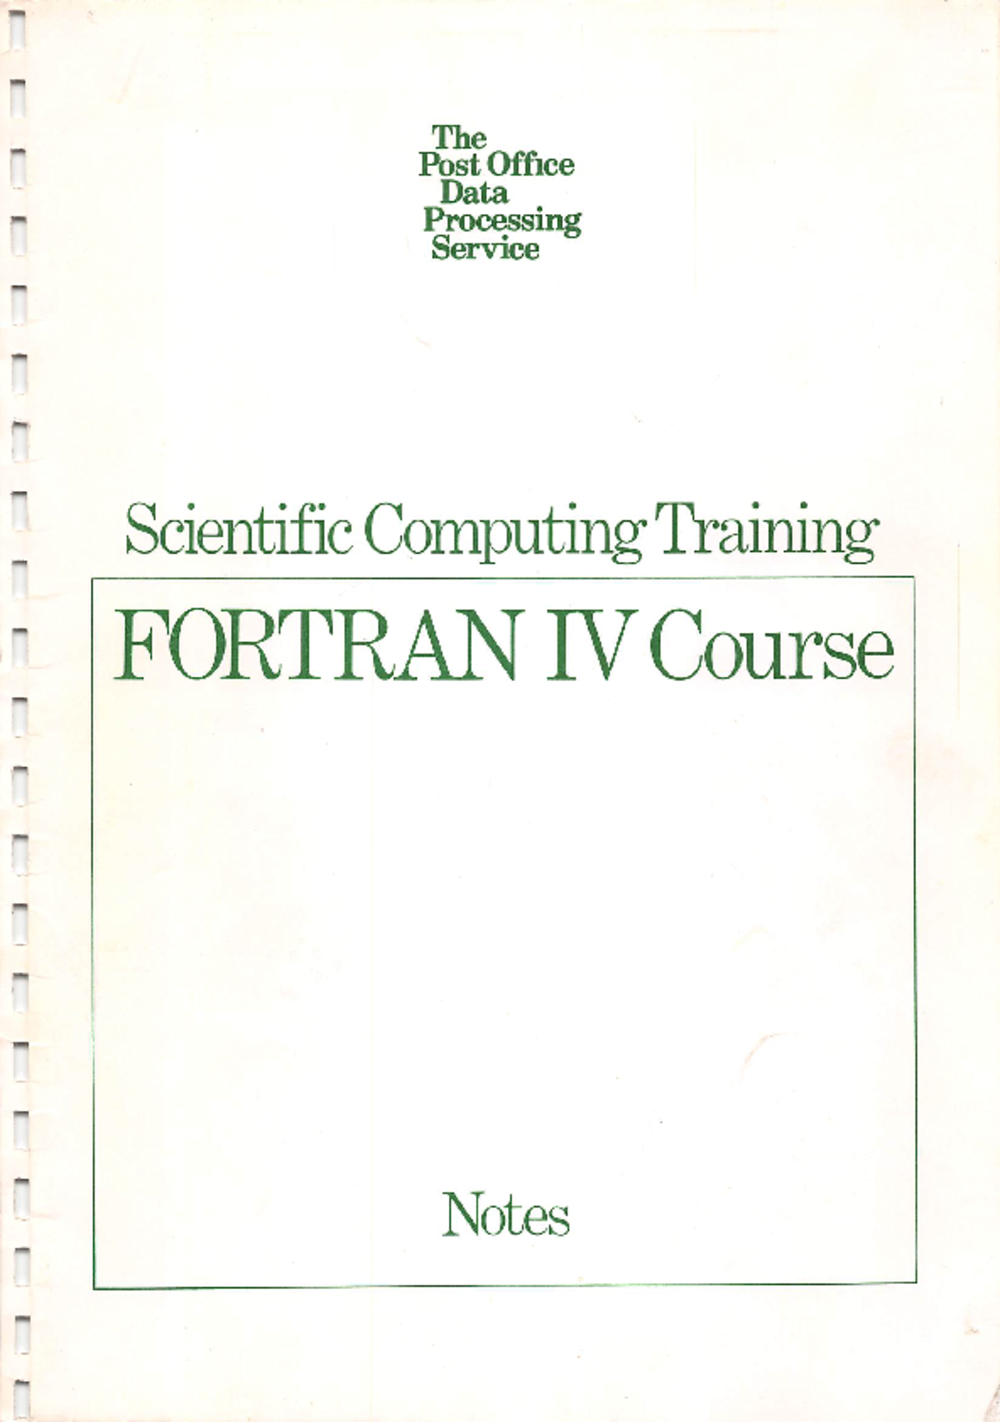 Article: The Post Office Data Processing Service - Scientific Computing Training - FORTRAN IV Course